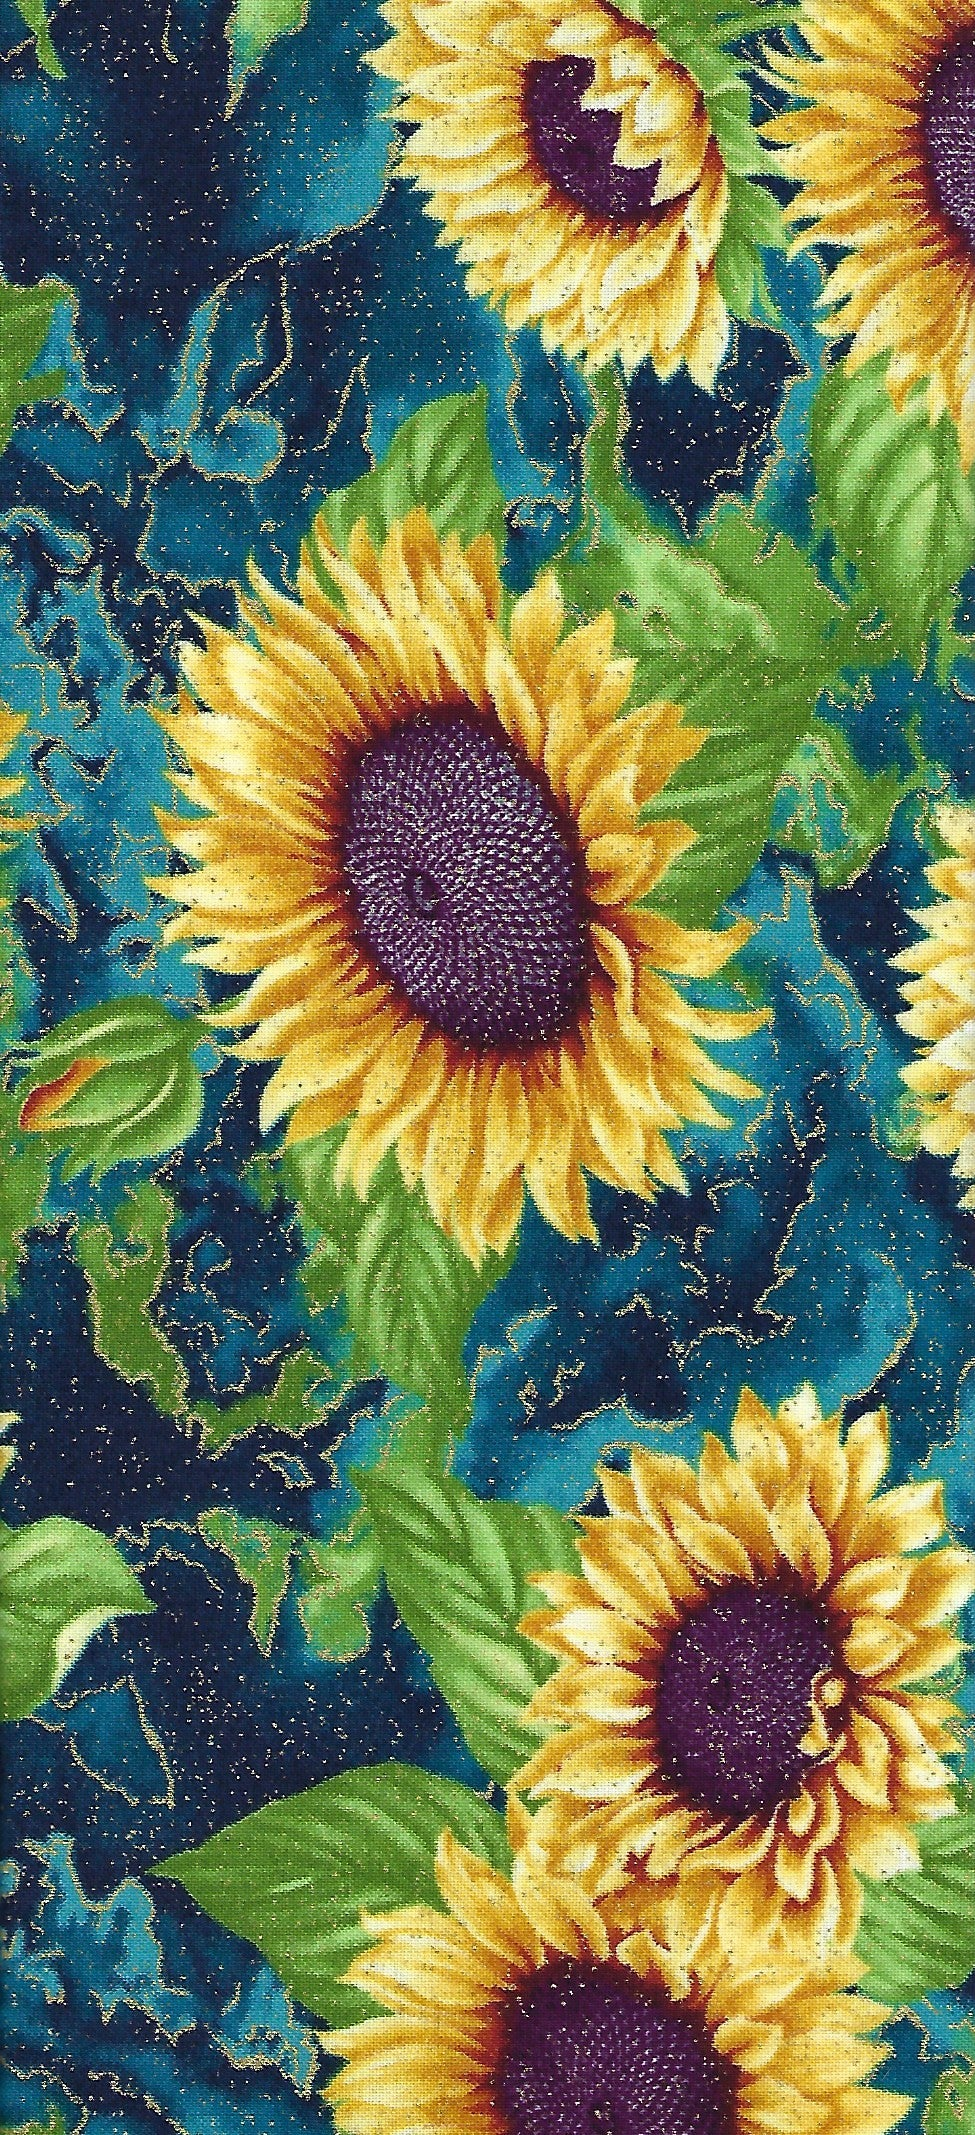 Faric Kit Swirl - Here Comes the Sun by Ann Lauer for Benartex